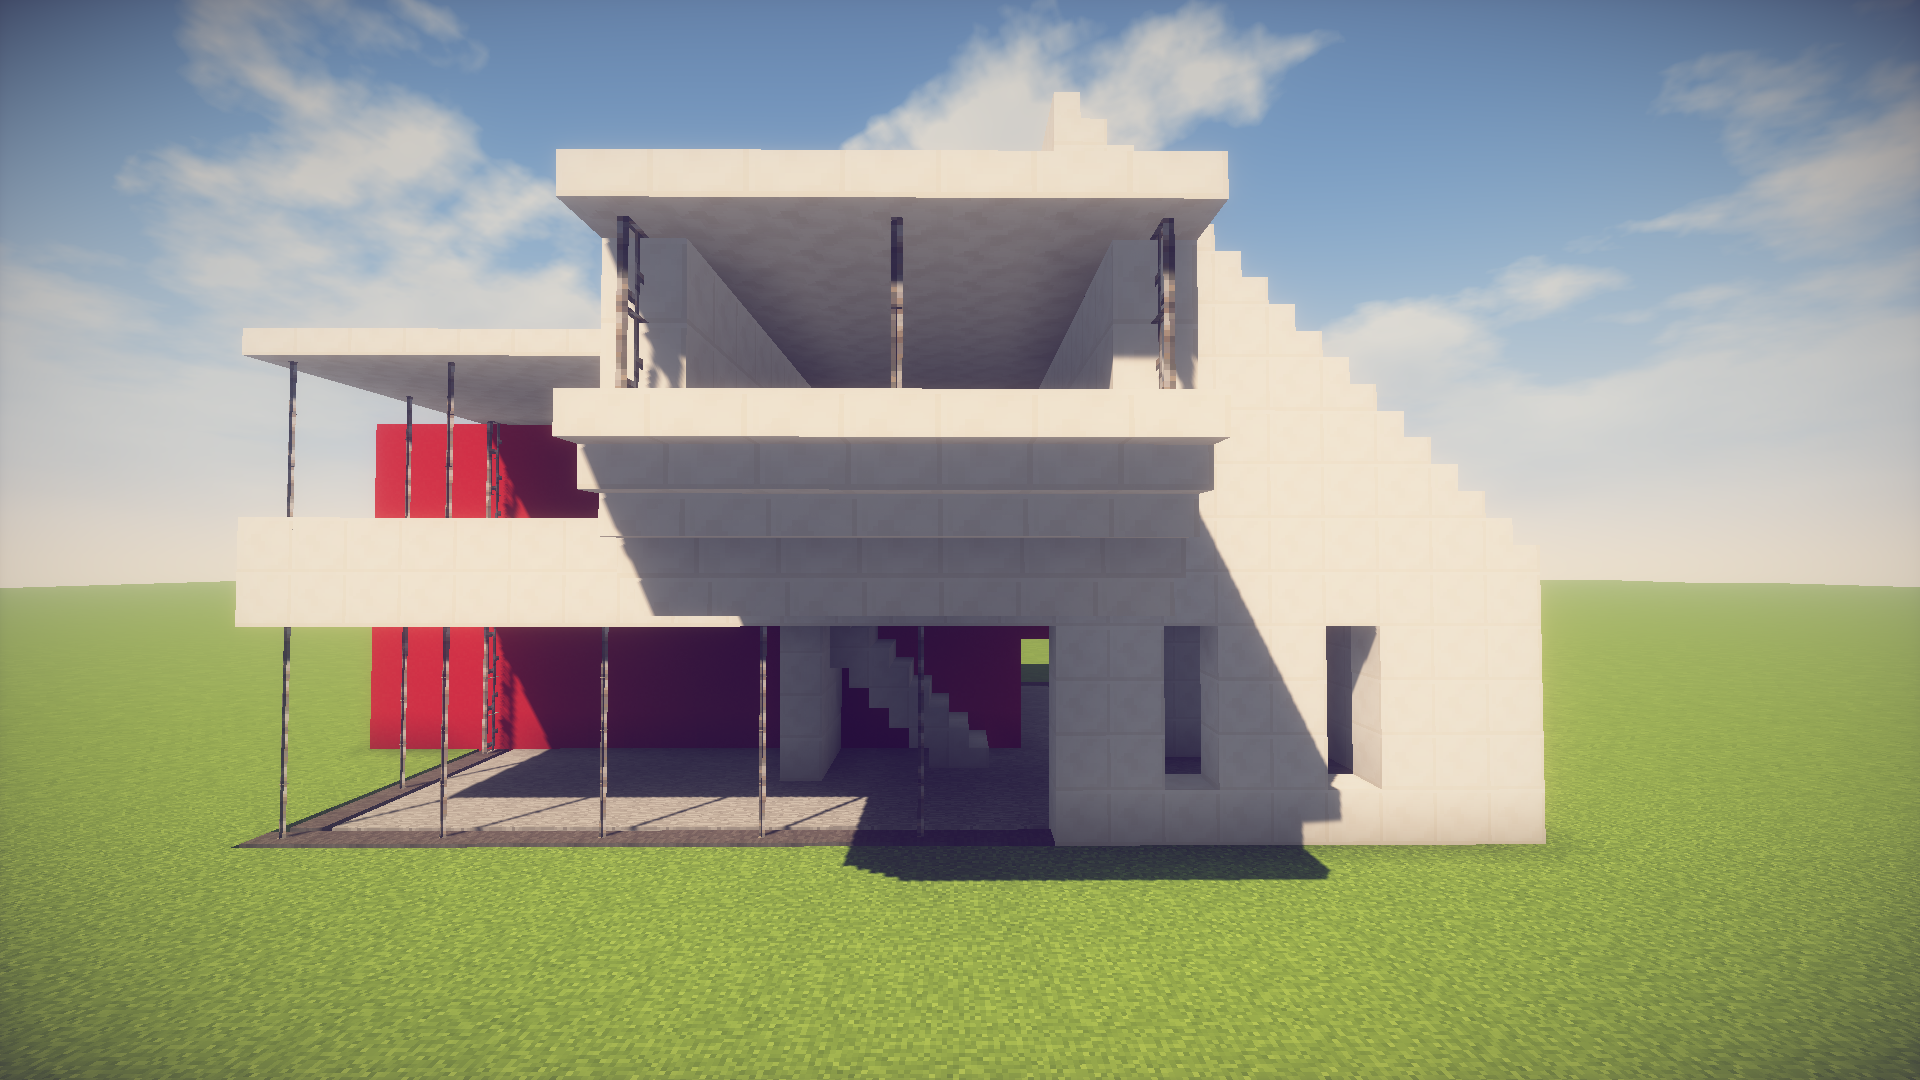 Minecraft: Simple/Easy Modern House - Easy Minecraft House Tutorial - Album  on Imgur - Simple House PNG HD